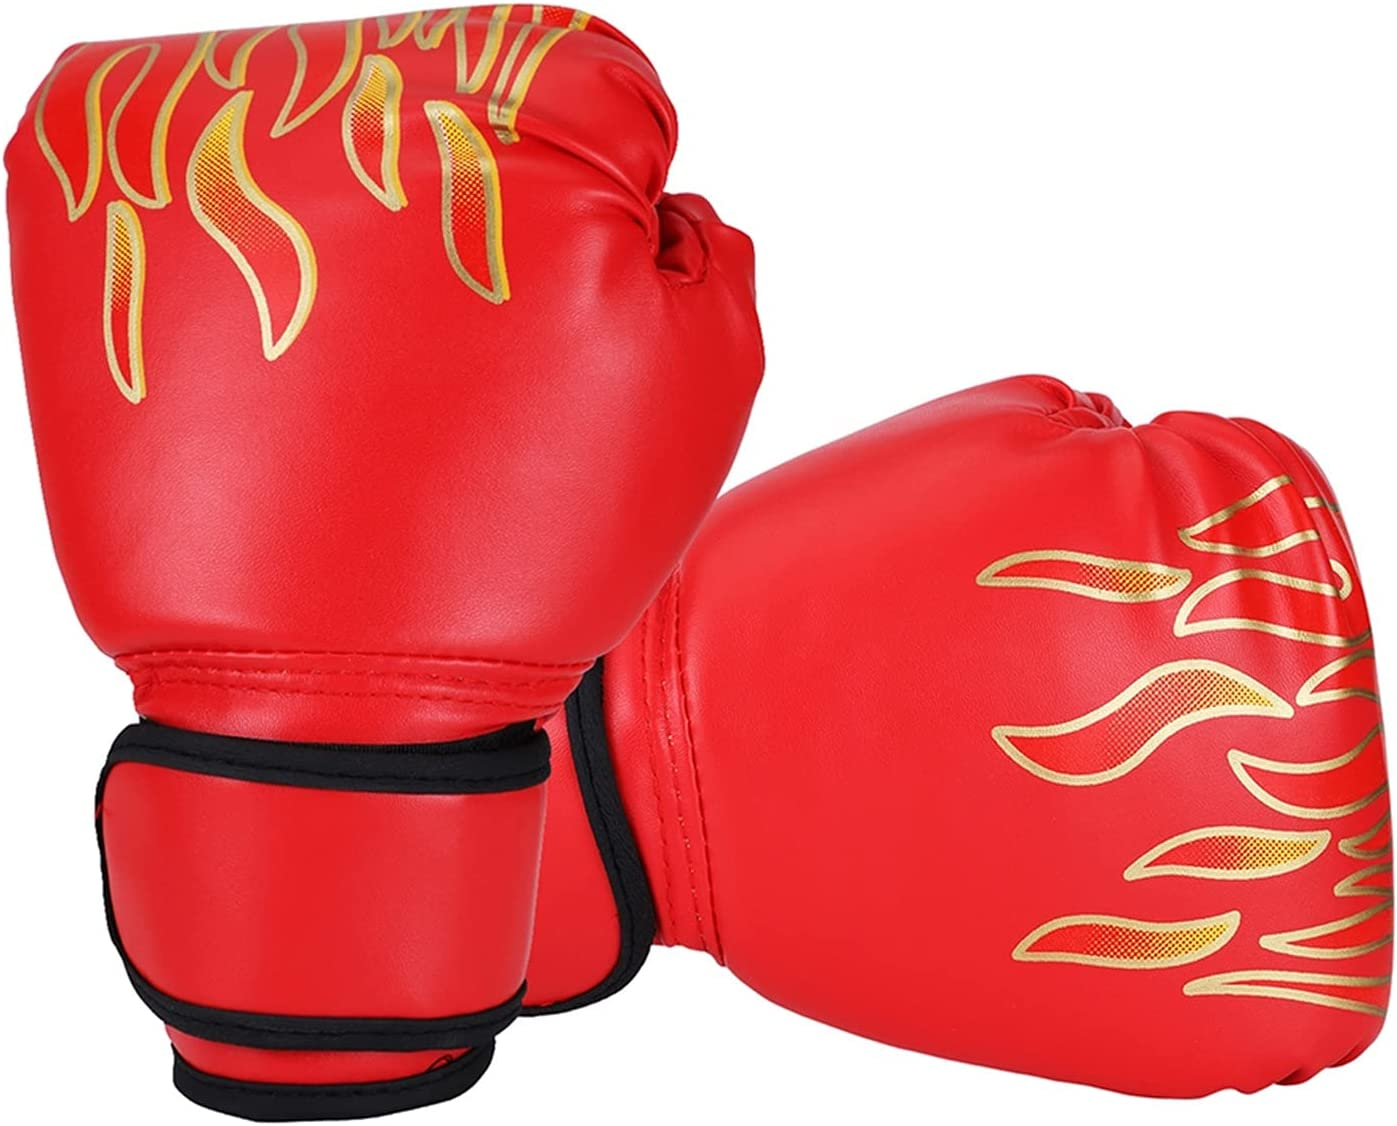 specialty shop JINSHANDIANLIAO Boxing Glove Leather Protective Classic Kickboxing